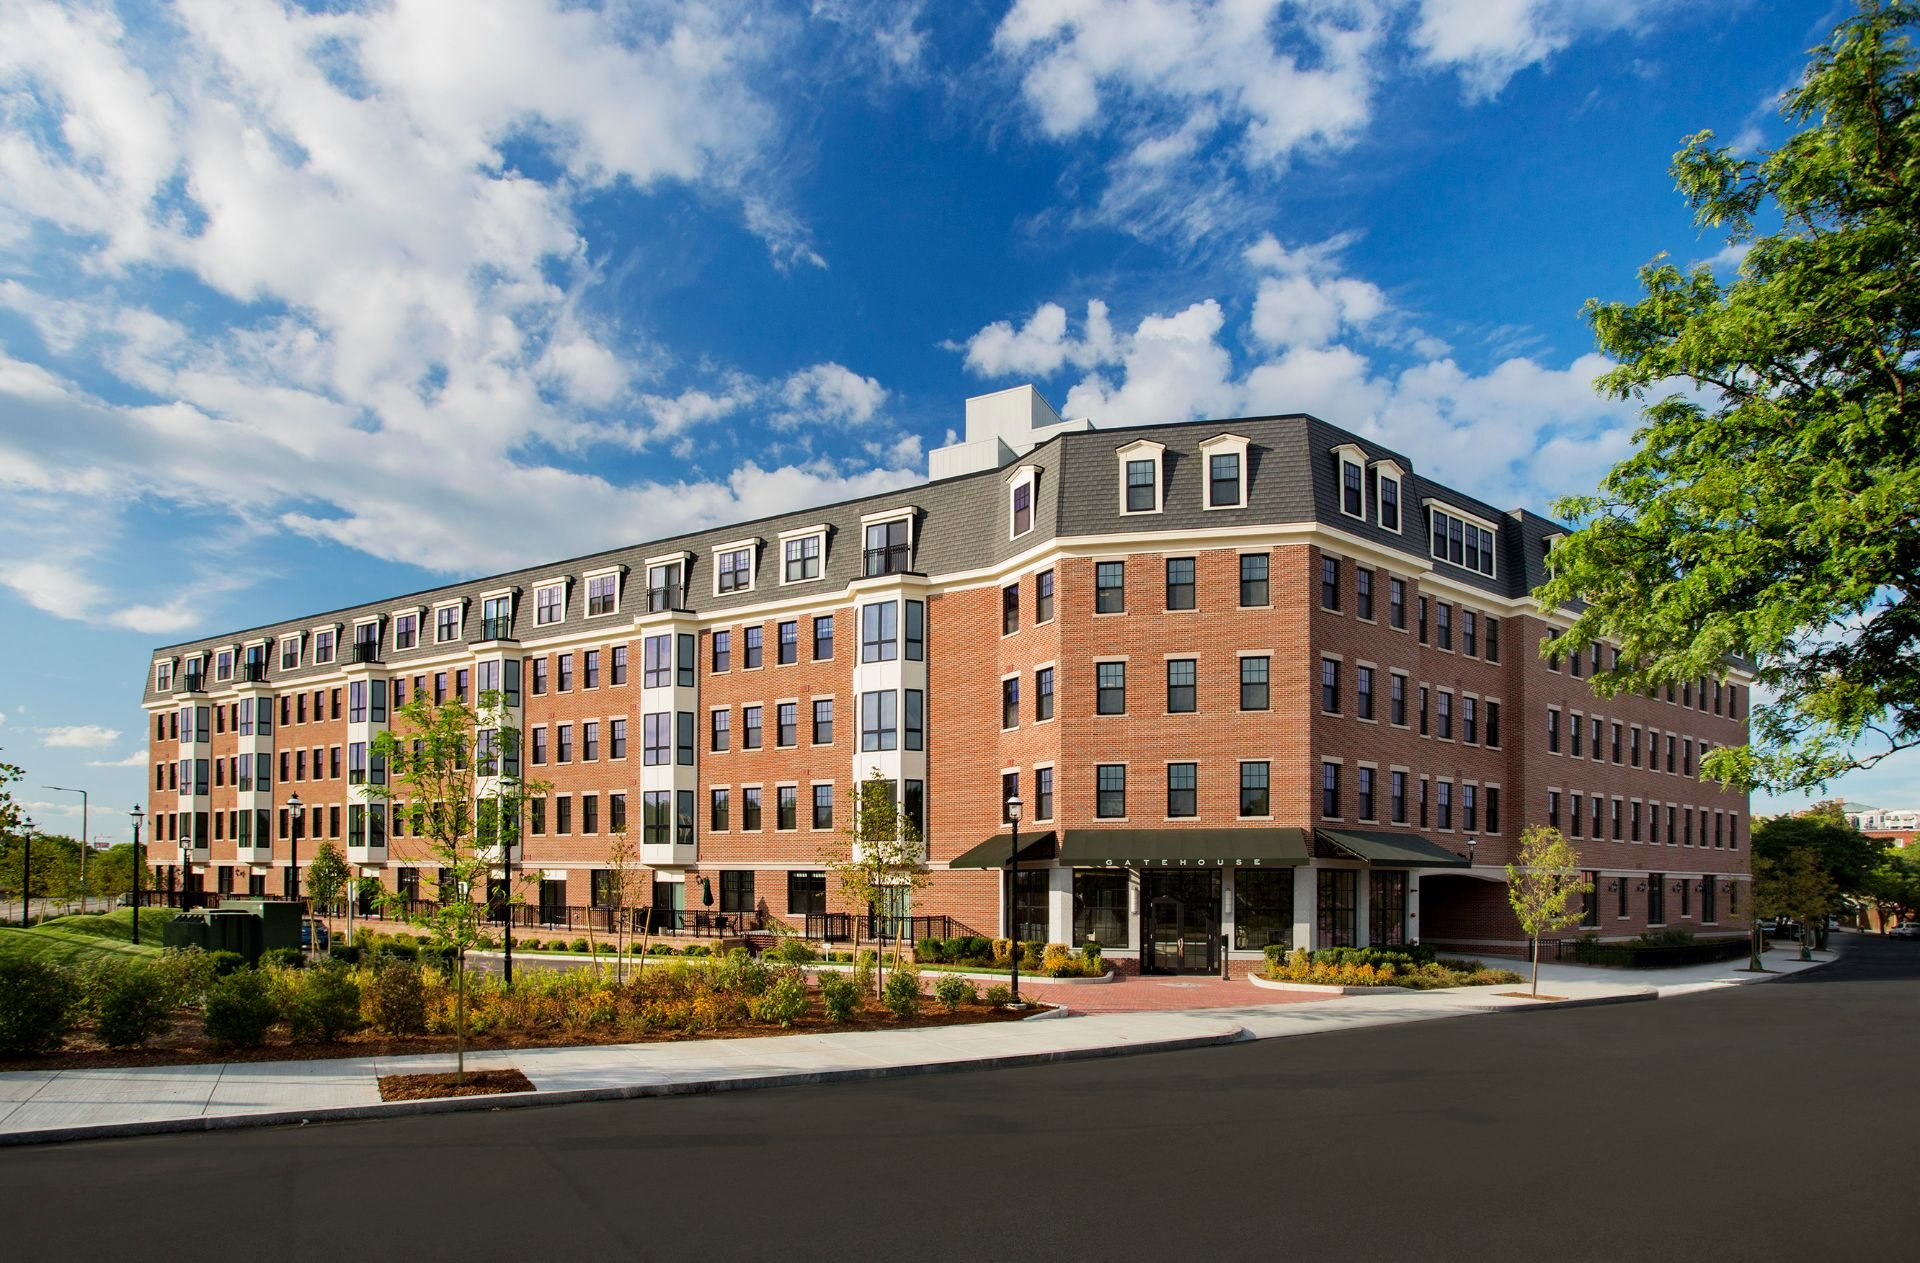 Exterior 5-Story Building with Beautiful Controlled Access Entrance and Garage Parking Entrance at Gatehouse 75, Massachusetts, 02129